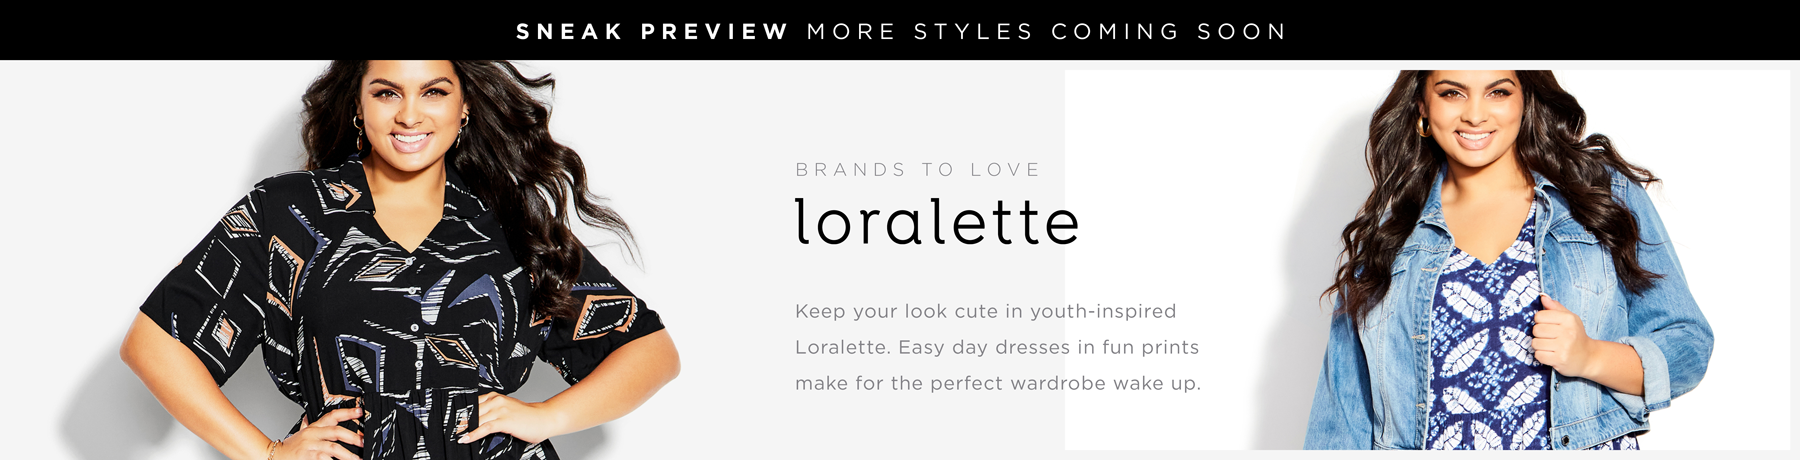 Loralette - Brands to Love